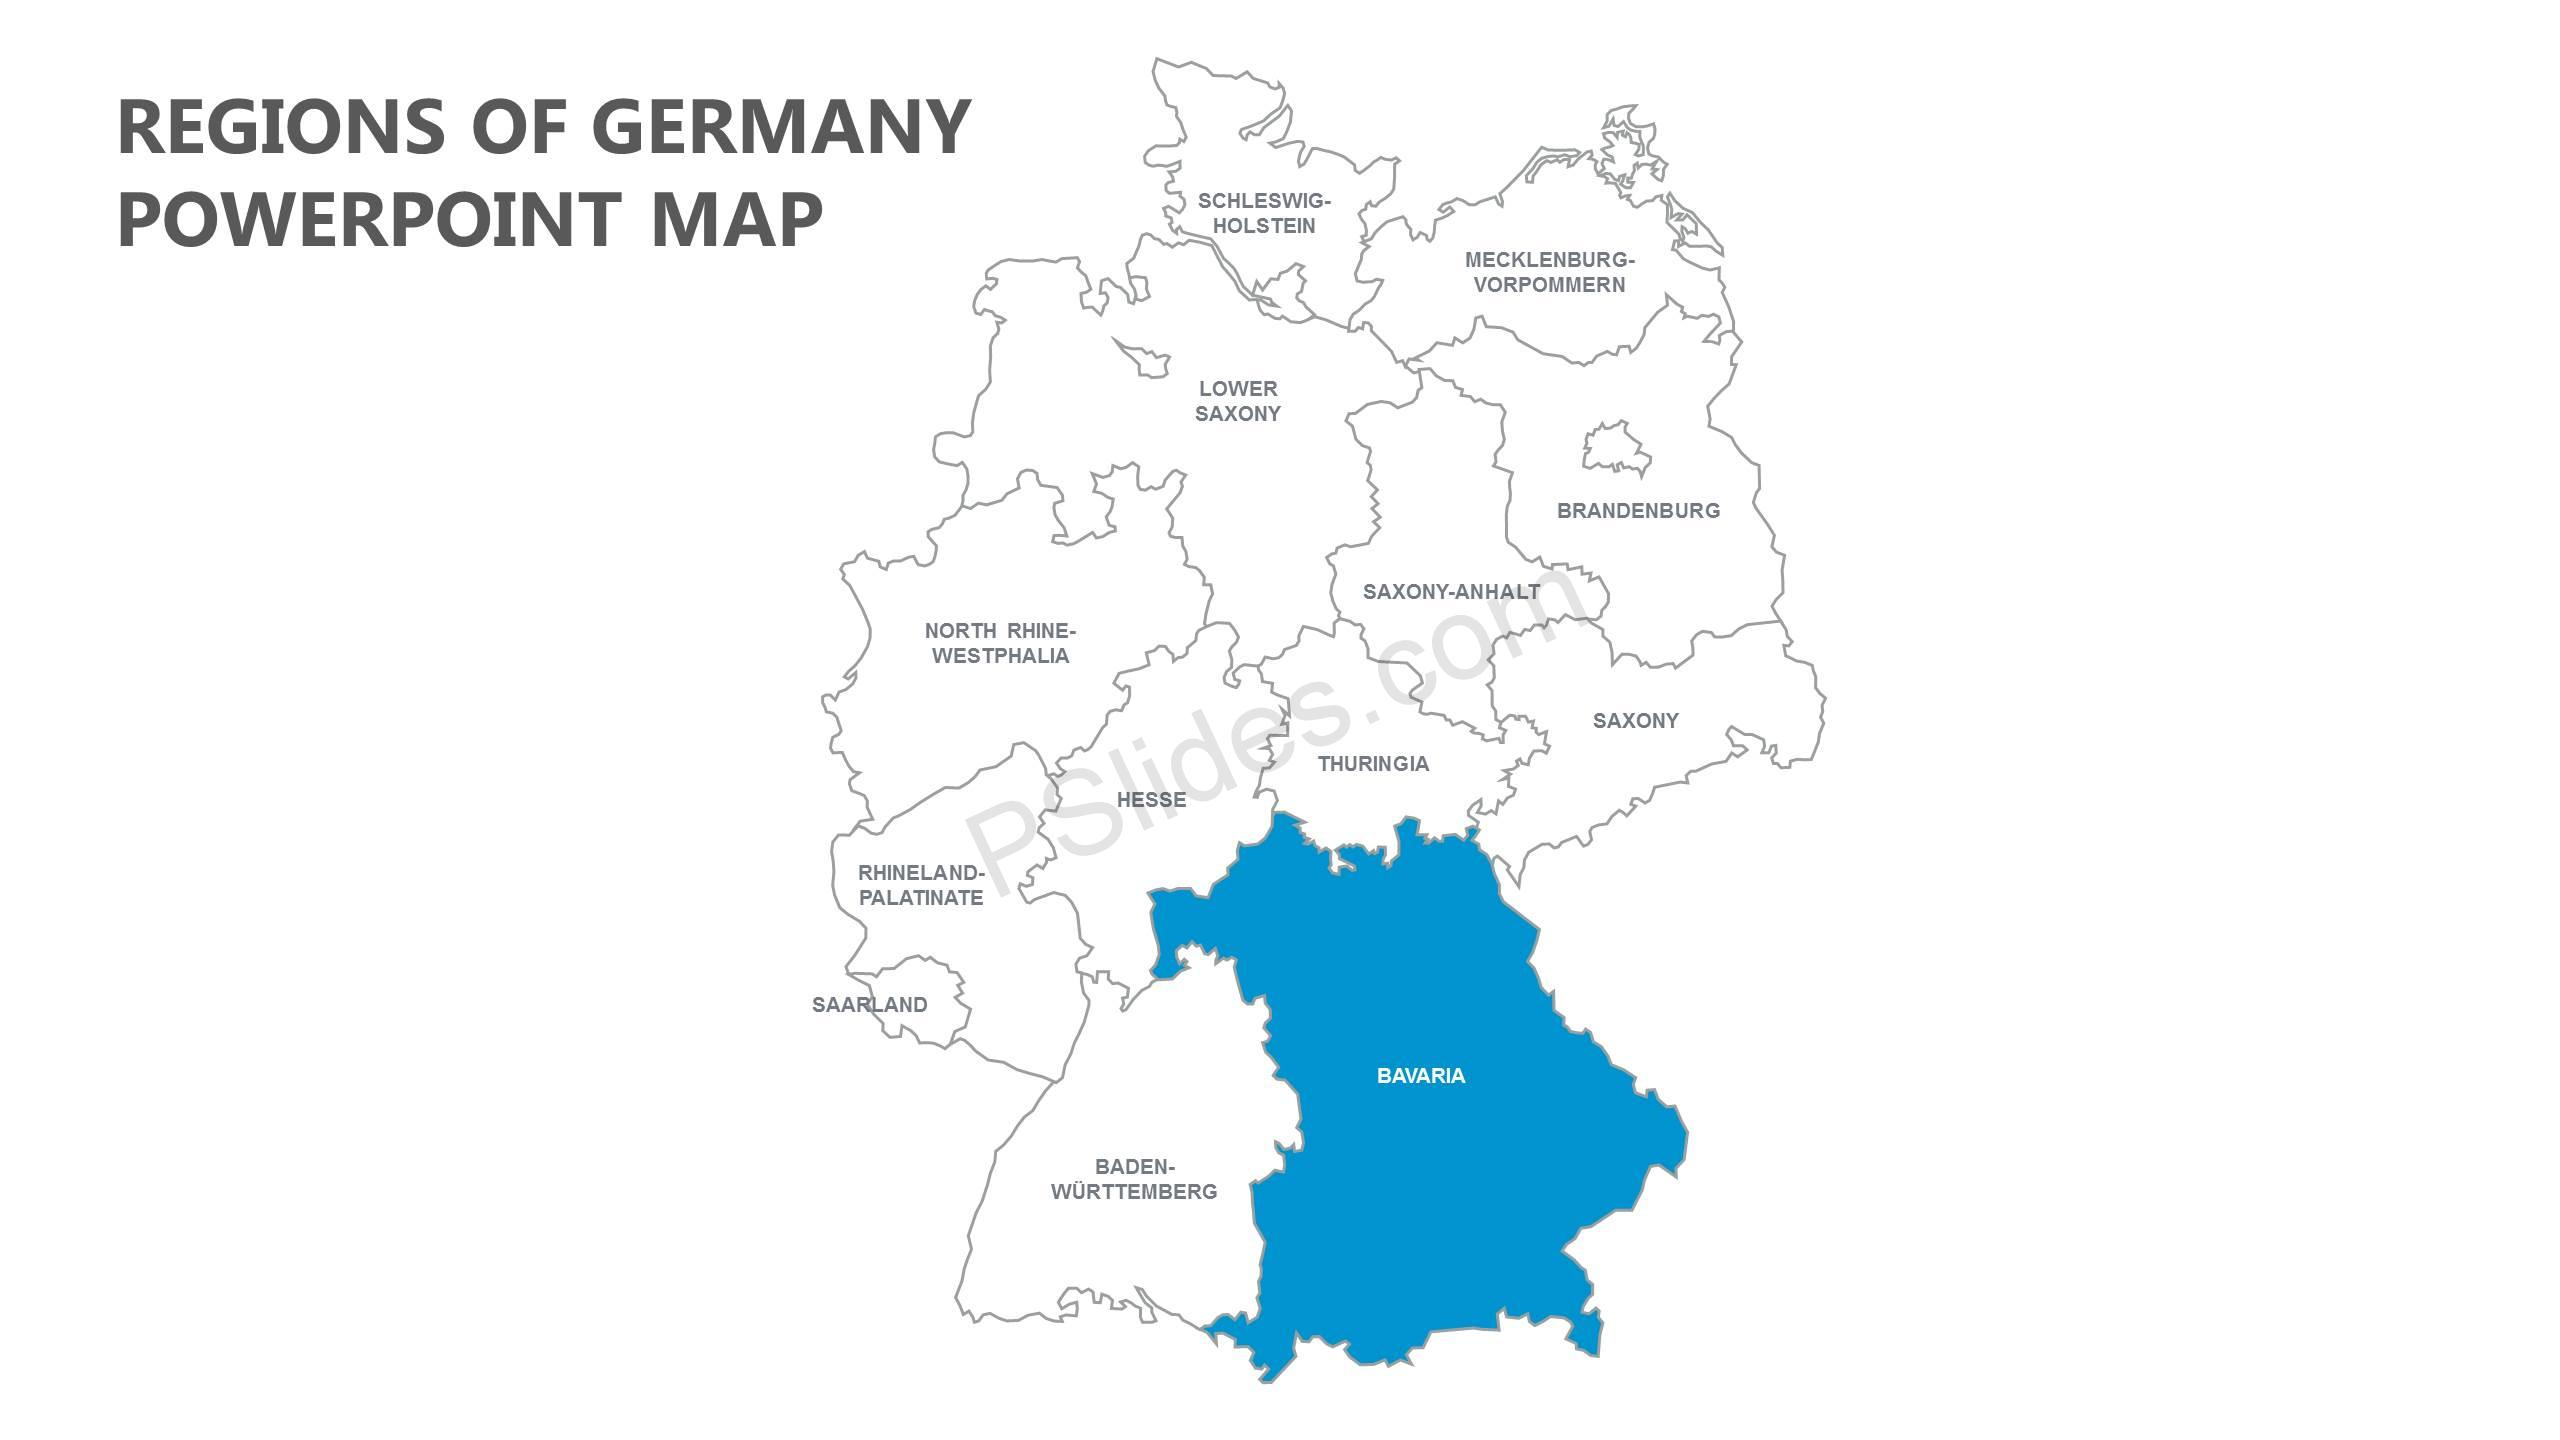 Map Of Germany Regions.Regions Of Germany Powerpoint Map Pslides